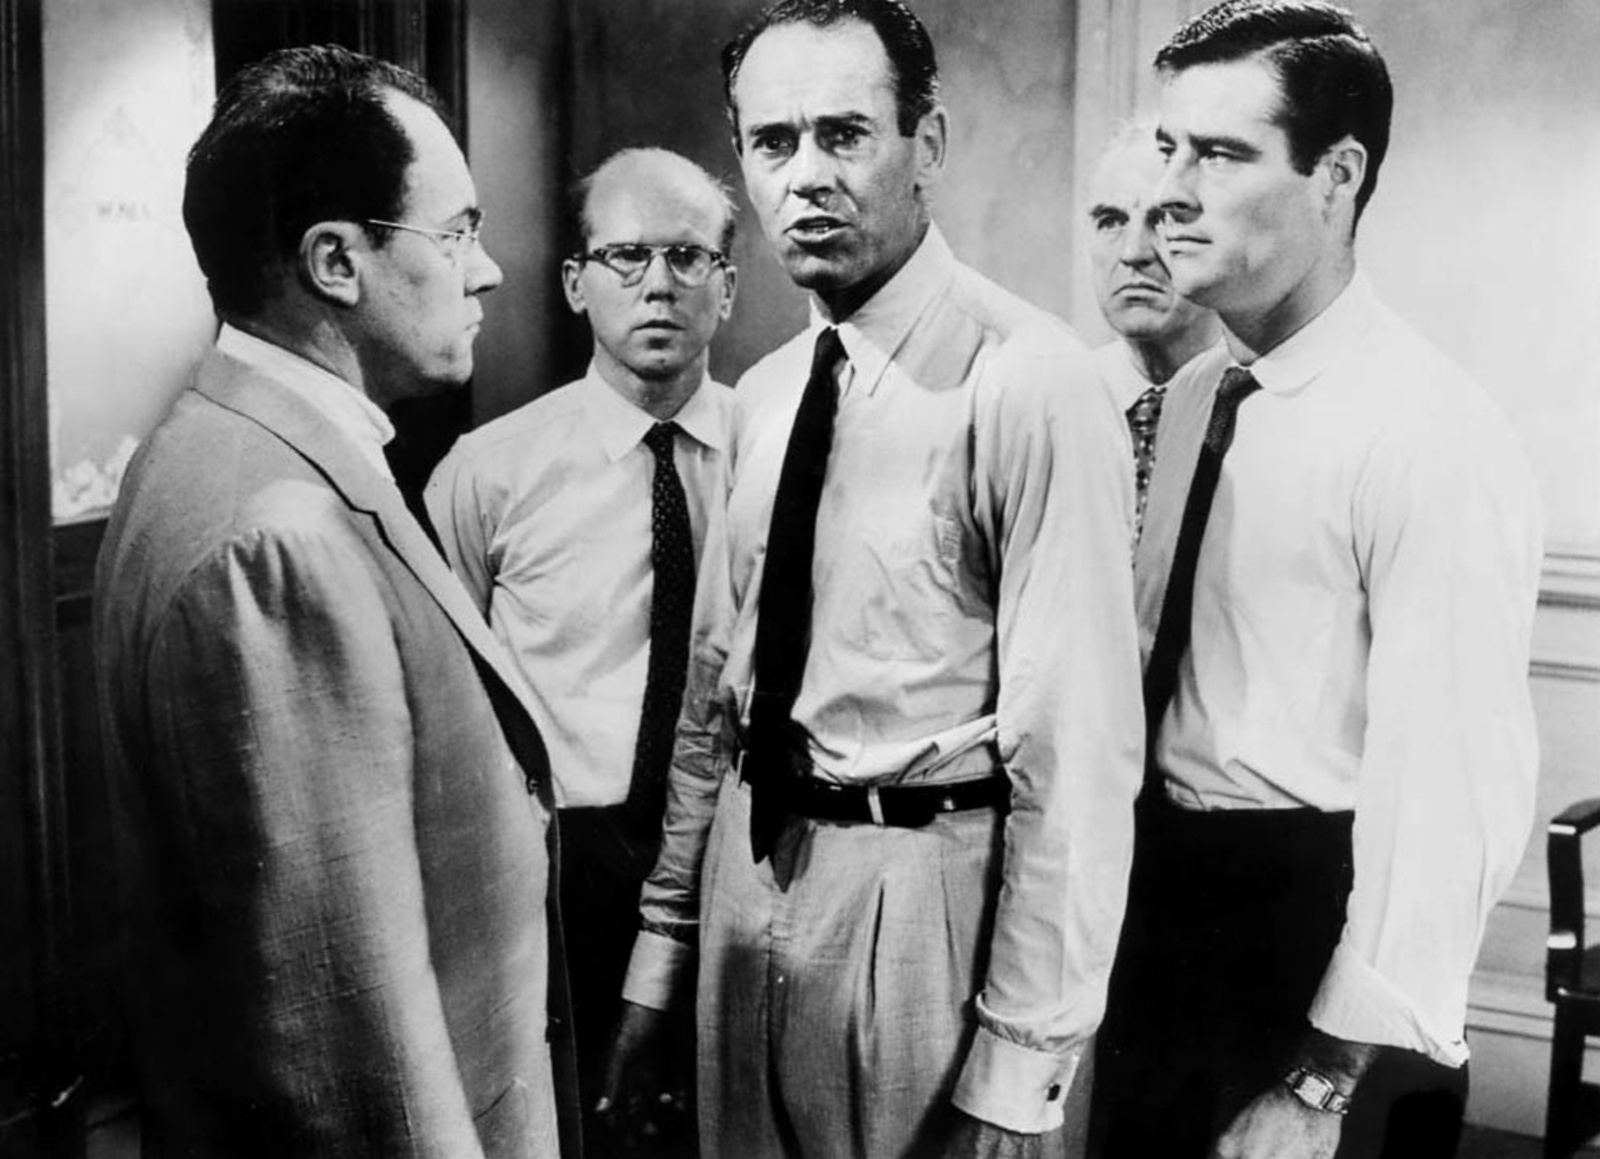 the major effect of the setting on the mood and conflict between the characters in twelve angry men  Watch movies and tv shows online watch from devices like ios, android, pc, ps4, xbox one and more registration is 100% free and easy.